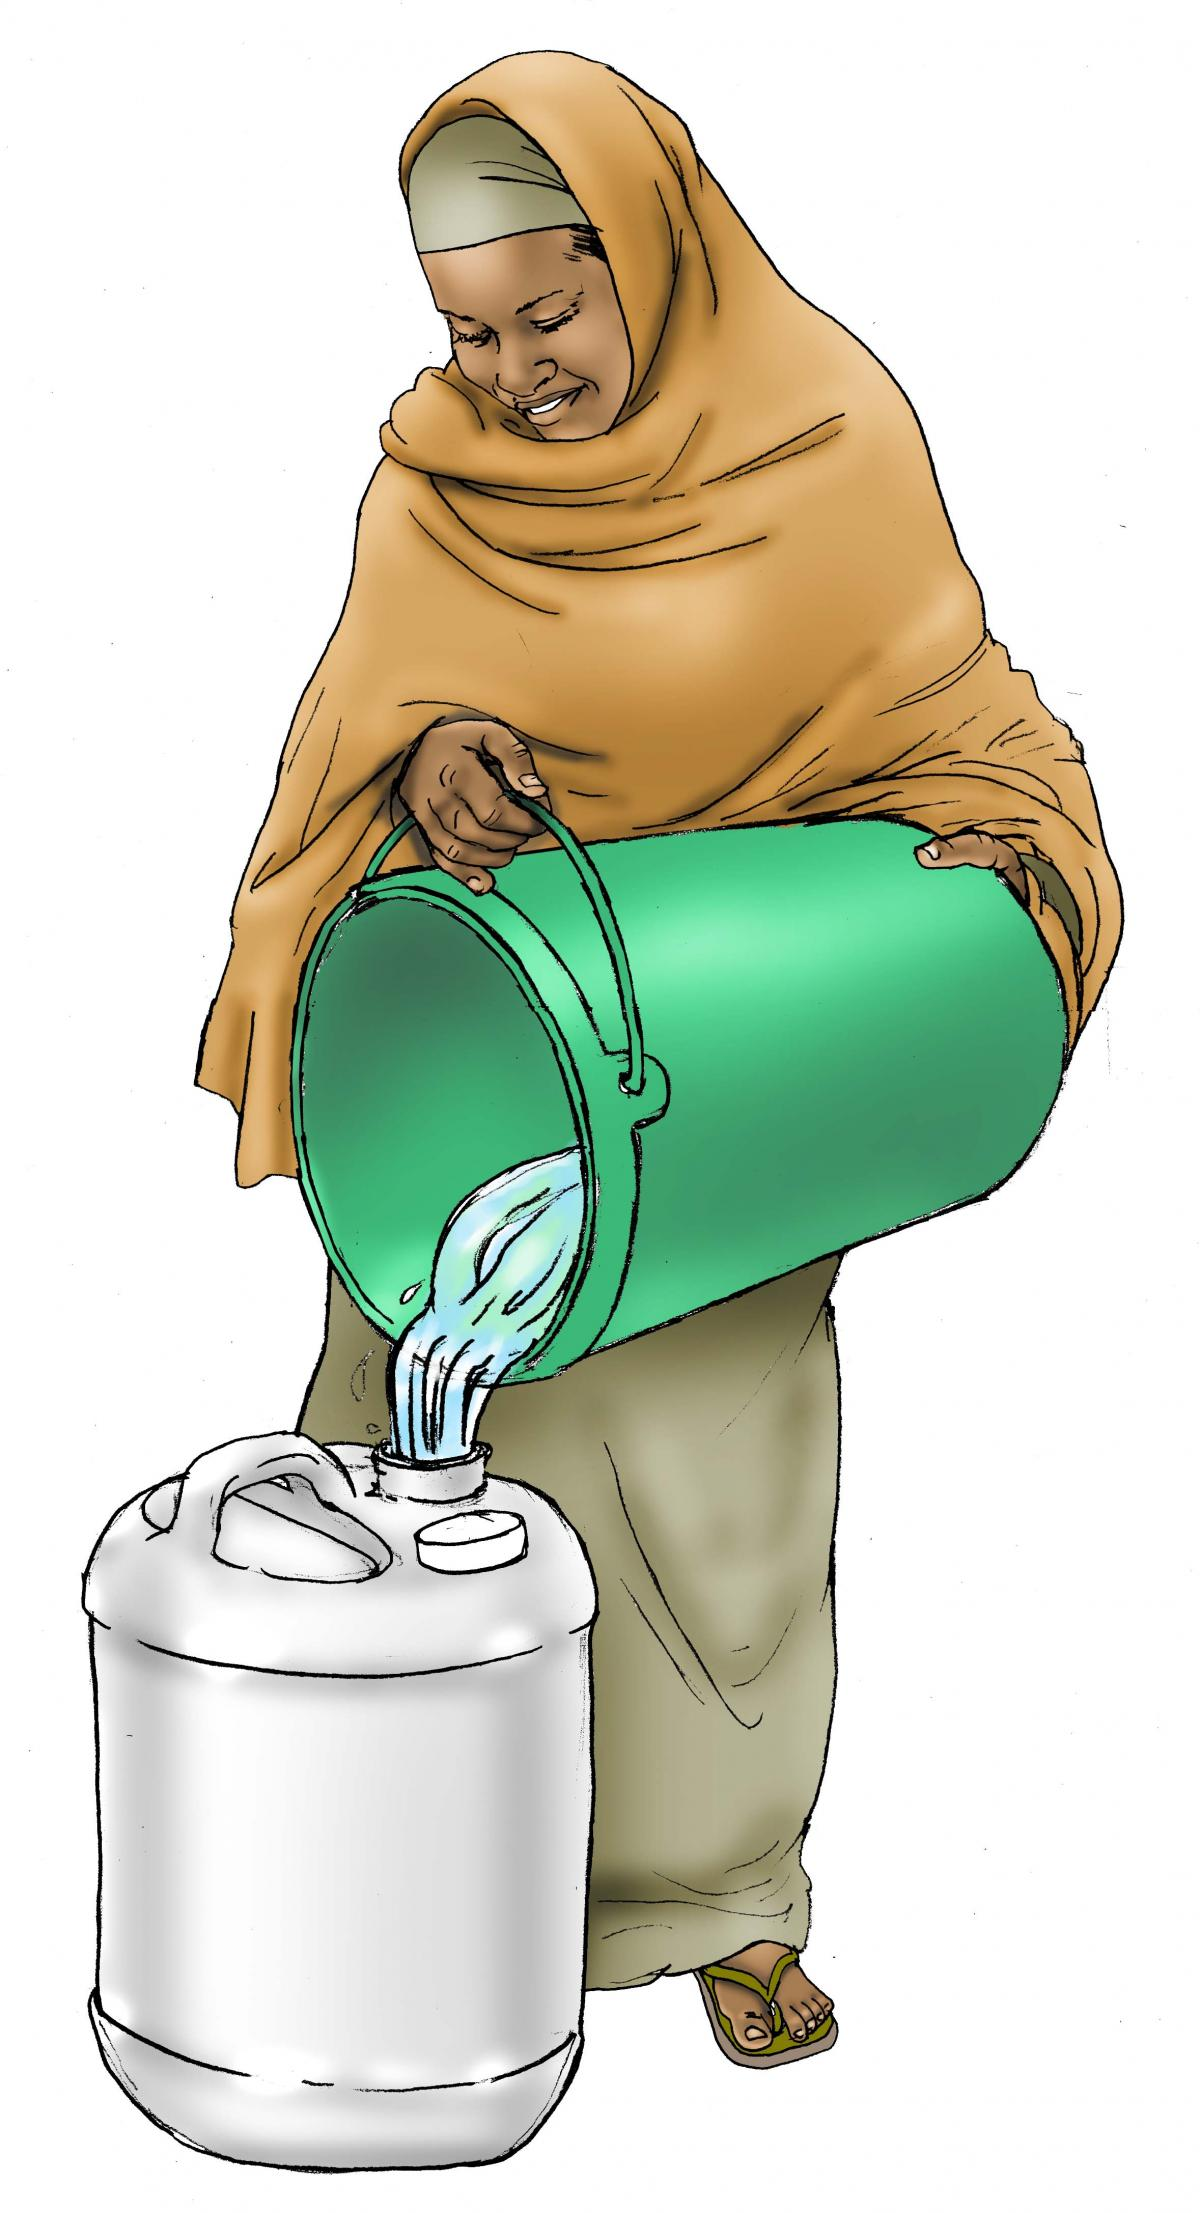 Sanitation - Woman filtering water - 04 - Kenya Dadaab